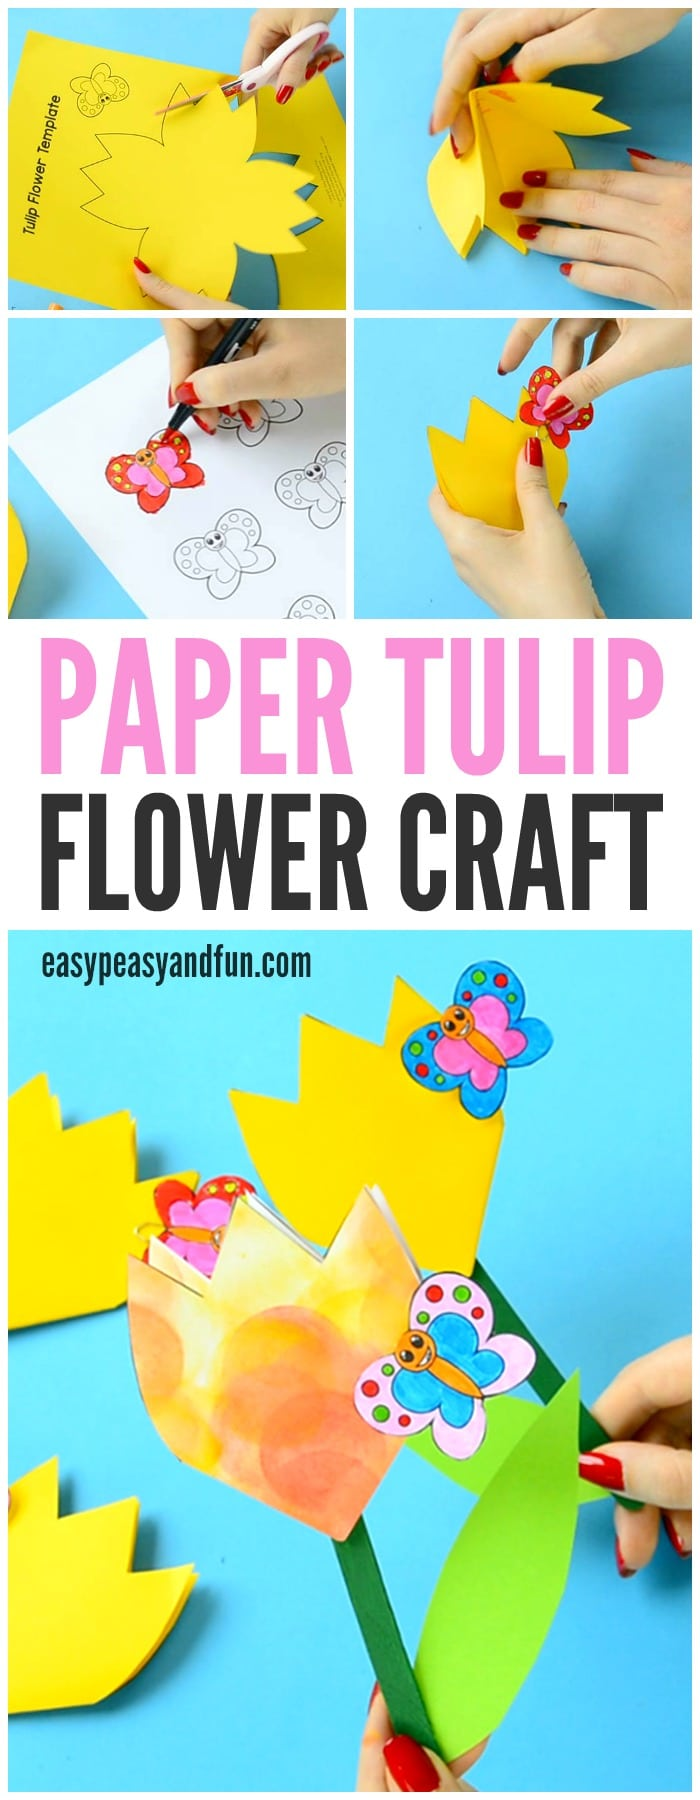 Cute Paper Tulip Flower Craft for Kids to Make